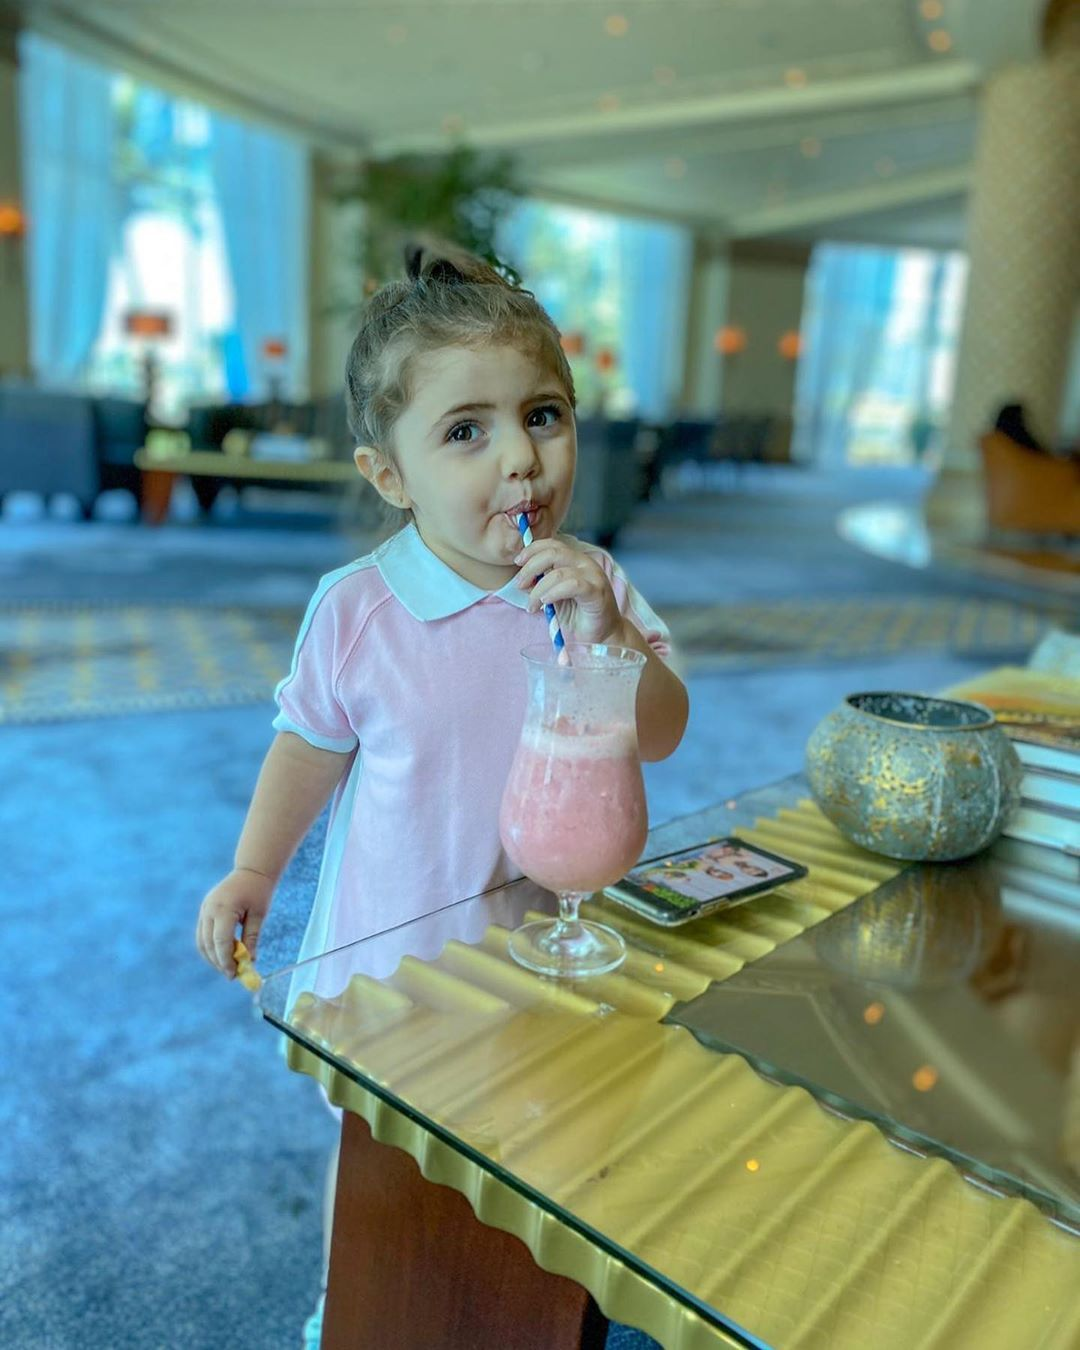 122 7k Likes 1 252 Comments Mila Marwah ميلا مروة Milamarwah On Instagram يوم ورا يوم وساعة Pretty Girls Selfies Dubai Fashionista New Baby Products